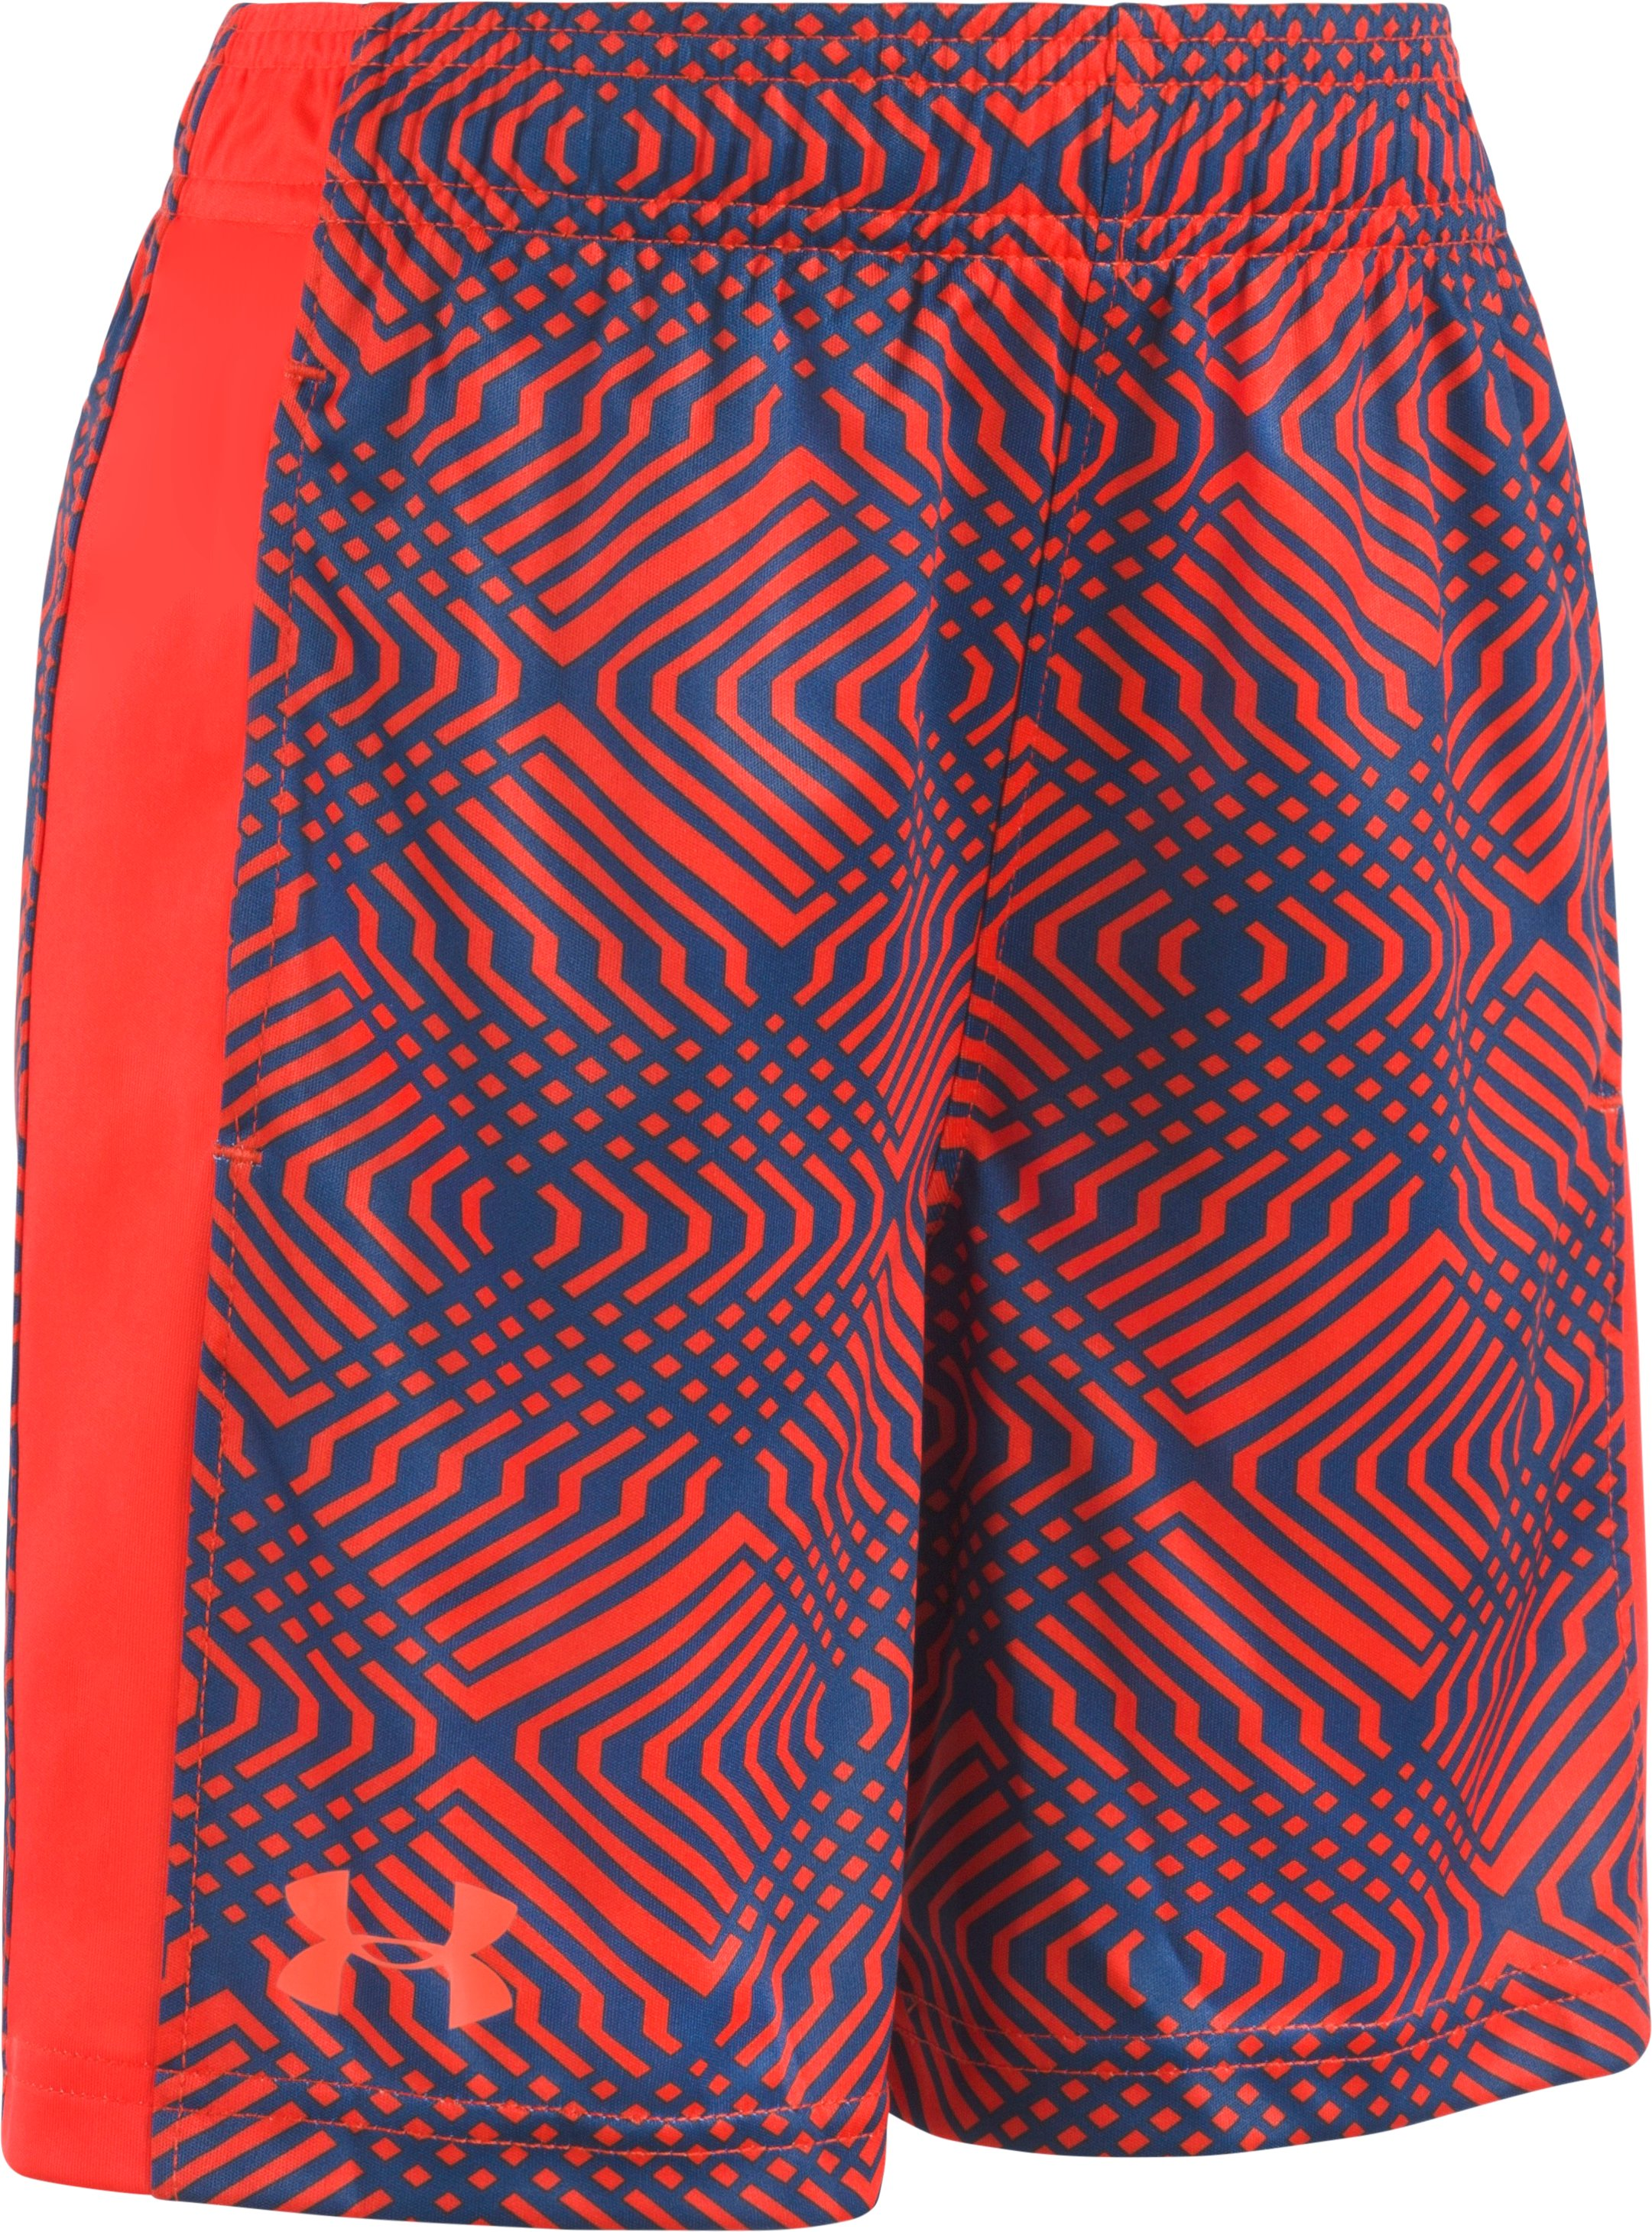 Boys' Toddler UA Midtown Grid Eliminator Shorts, Dark Orange